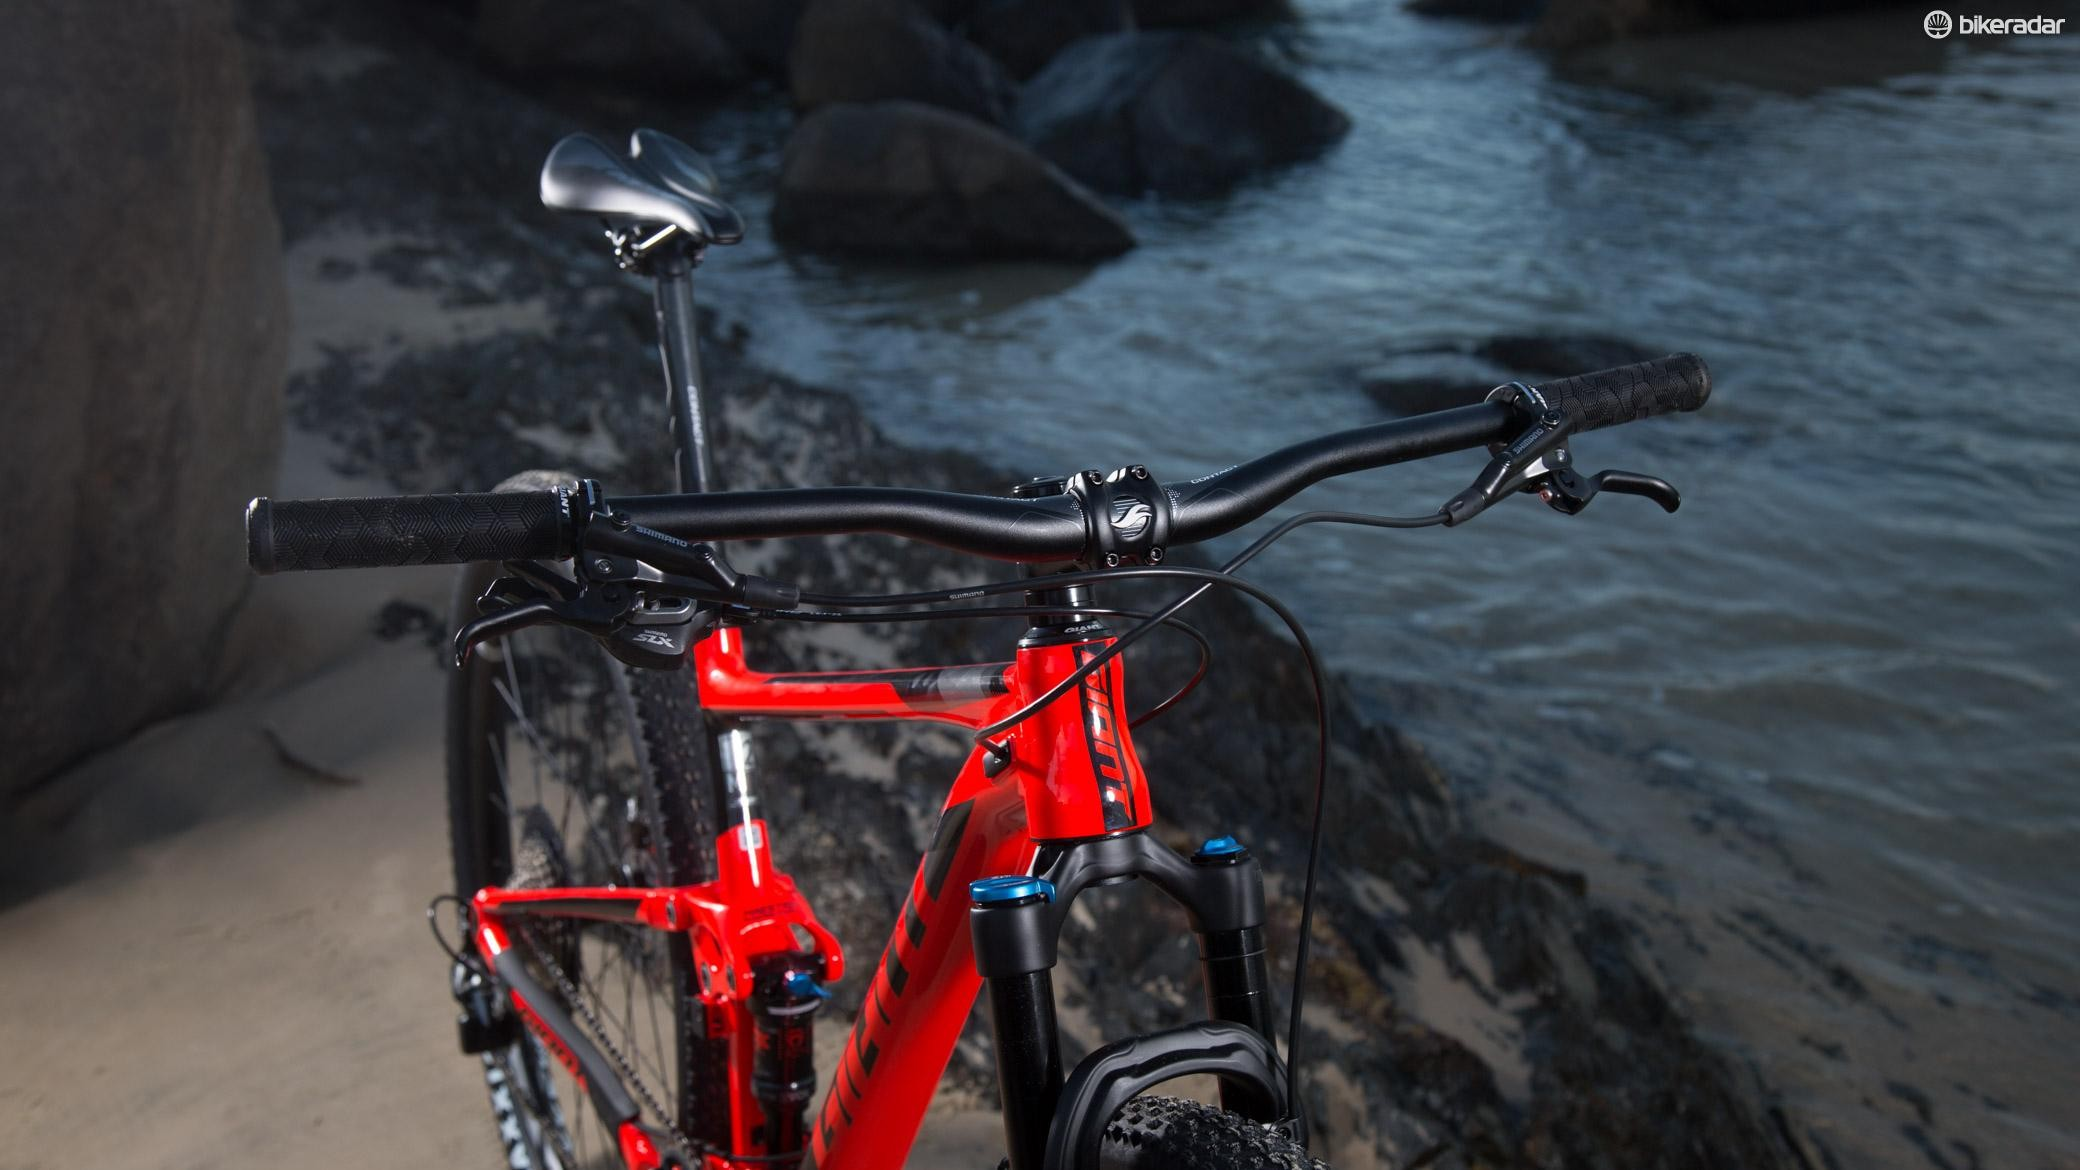 It's not common yet to see 780mm bars on an XC bike straight out of the box